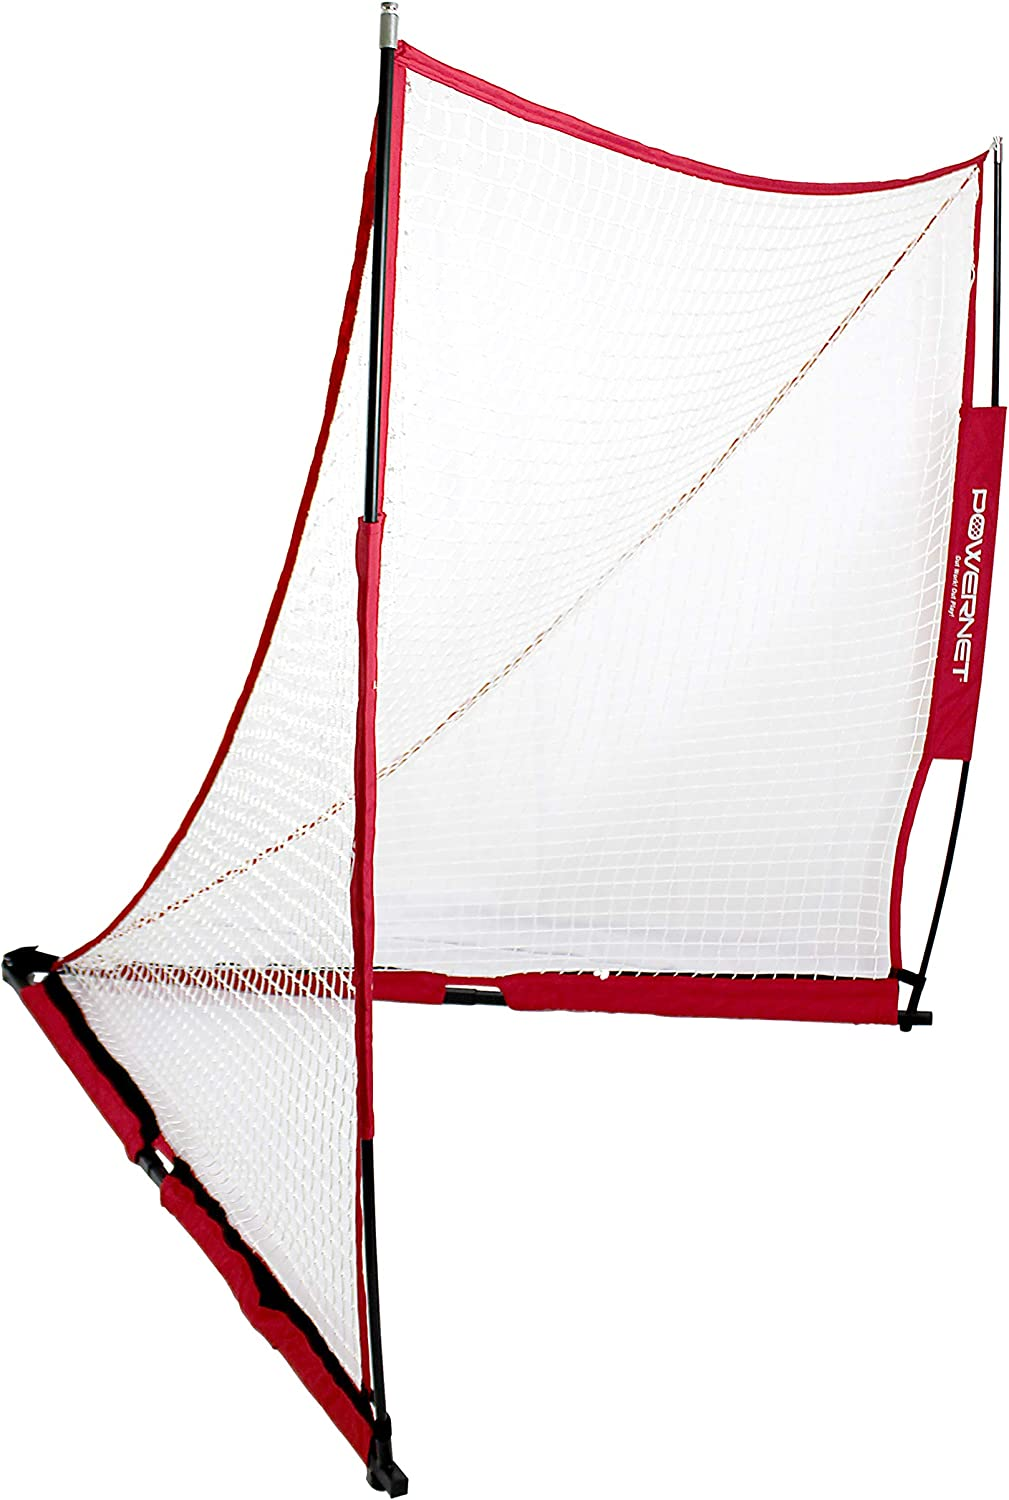 PowerNet Portable Lacrosse Goal | Choose from Two Sizes 6x6 or 4x4 | Quick and Easy 2 Minute Setup No Tools Required | Perfect for Practice or Scrimmages | Bow Style Frame | Carrying Bag Included